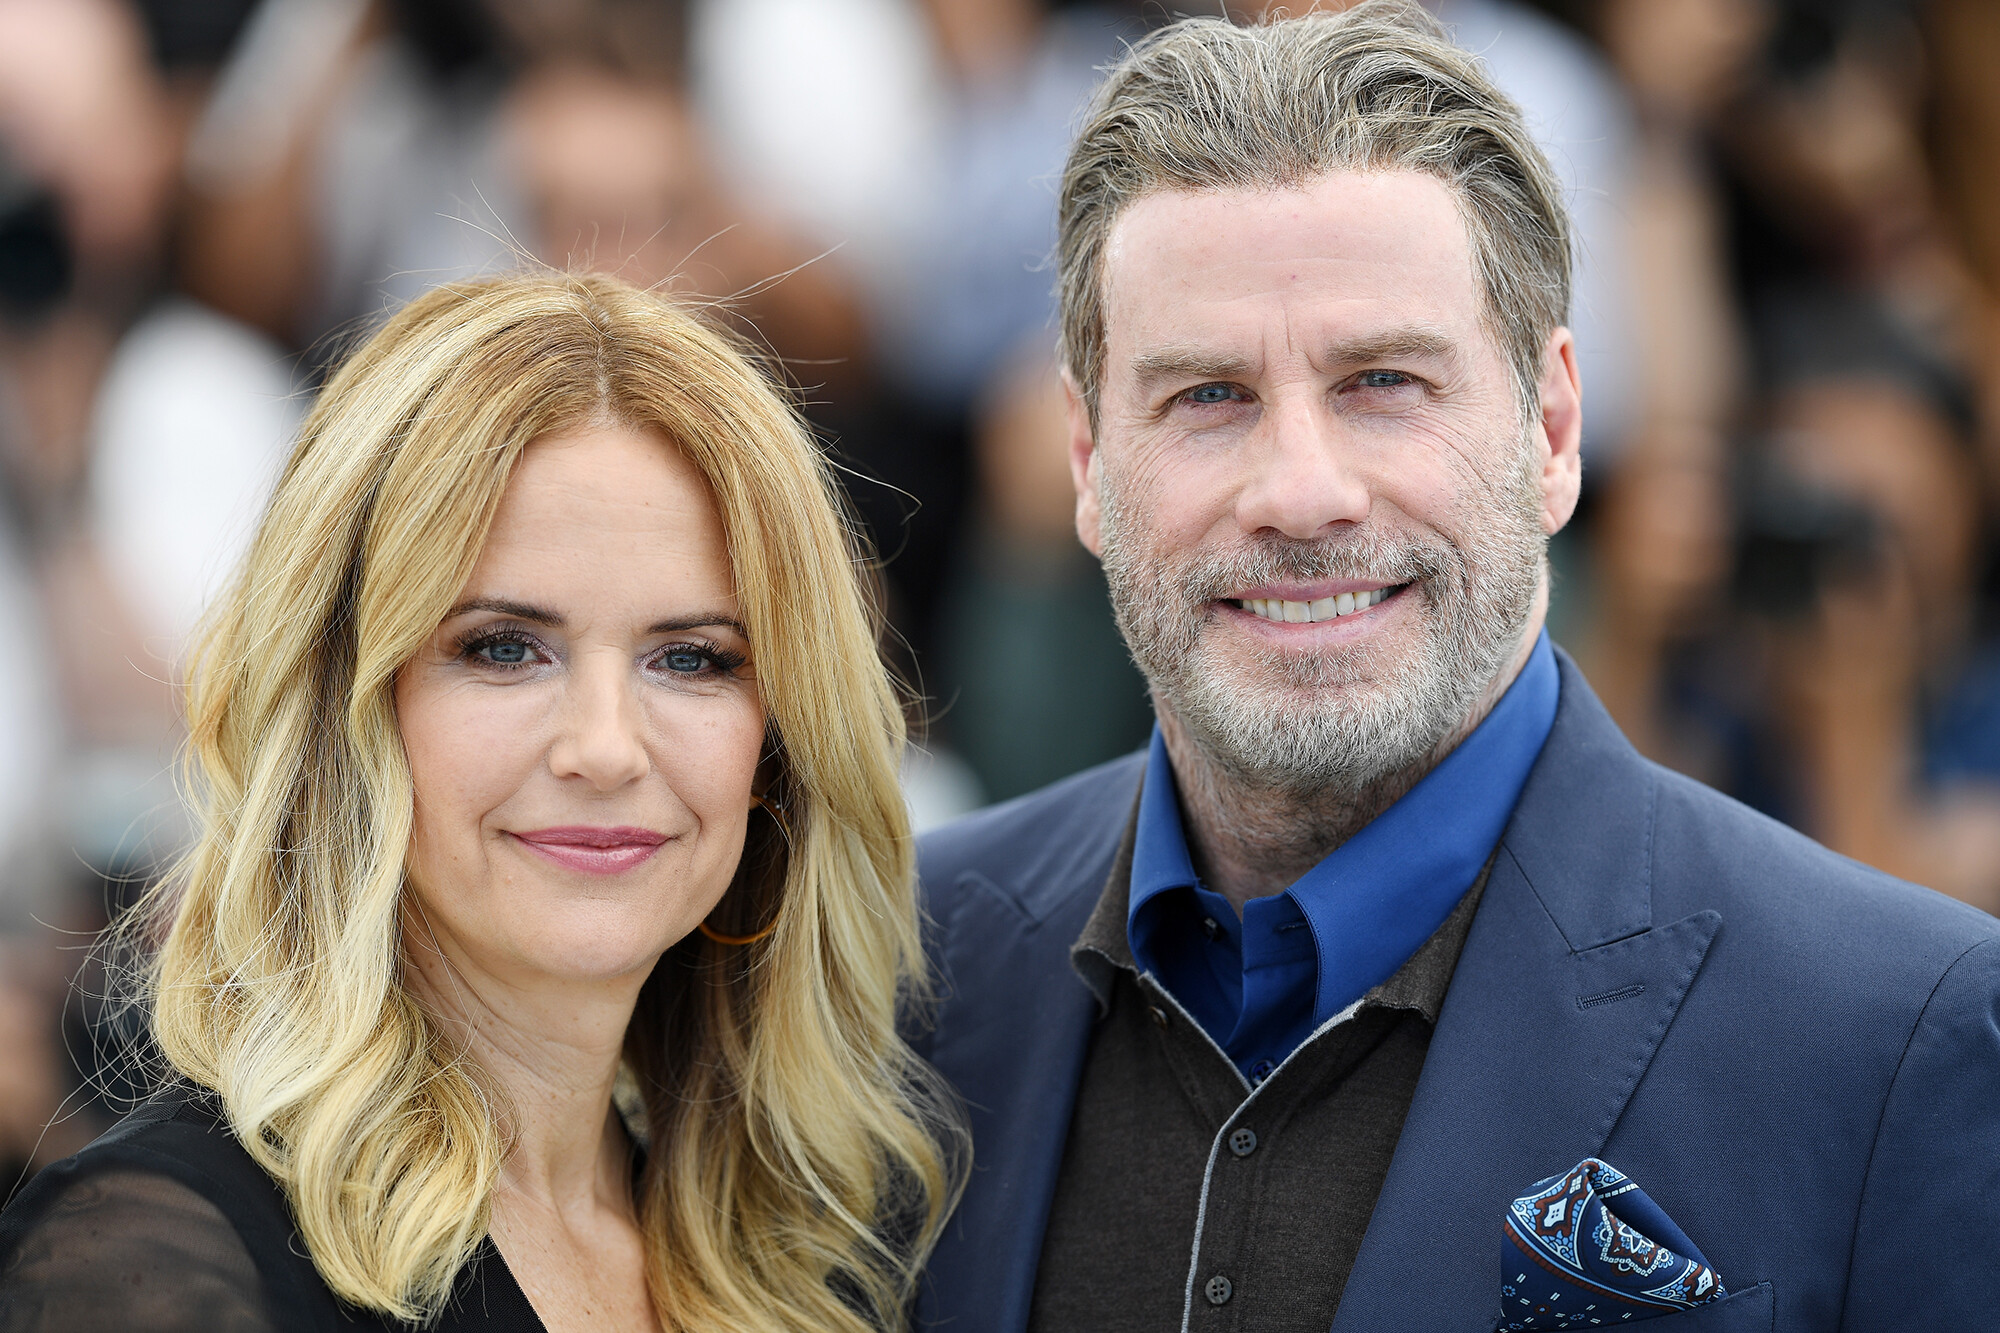 John Travolta on how he talked to their young son about Kelly Preston's death